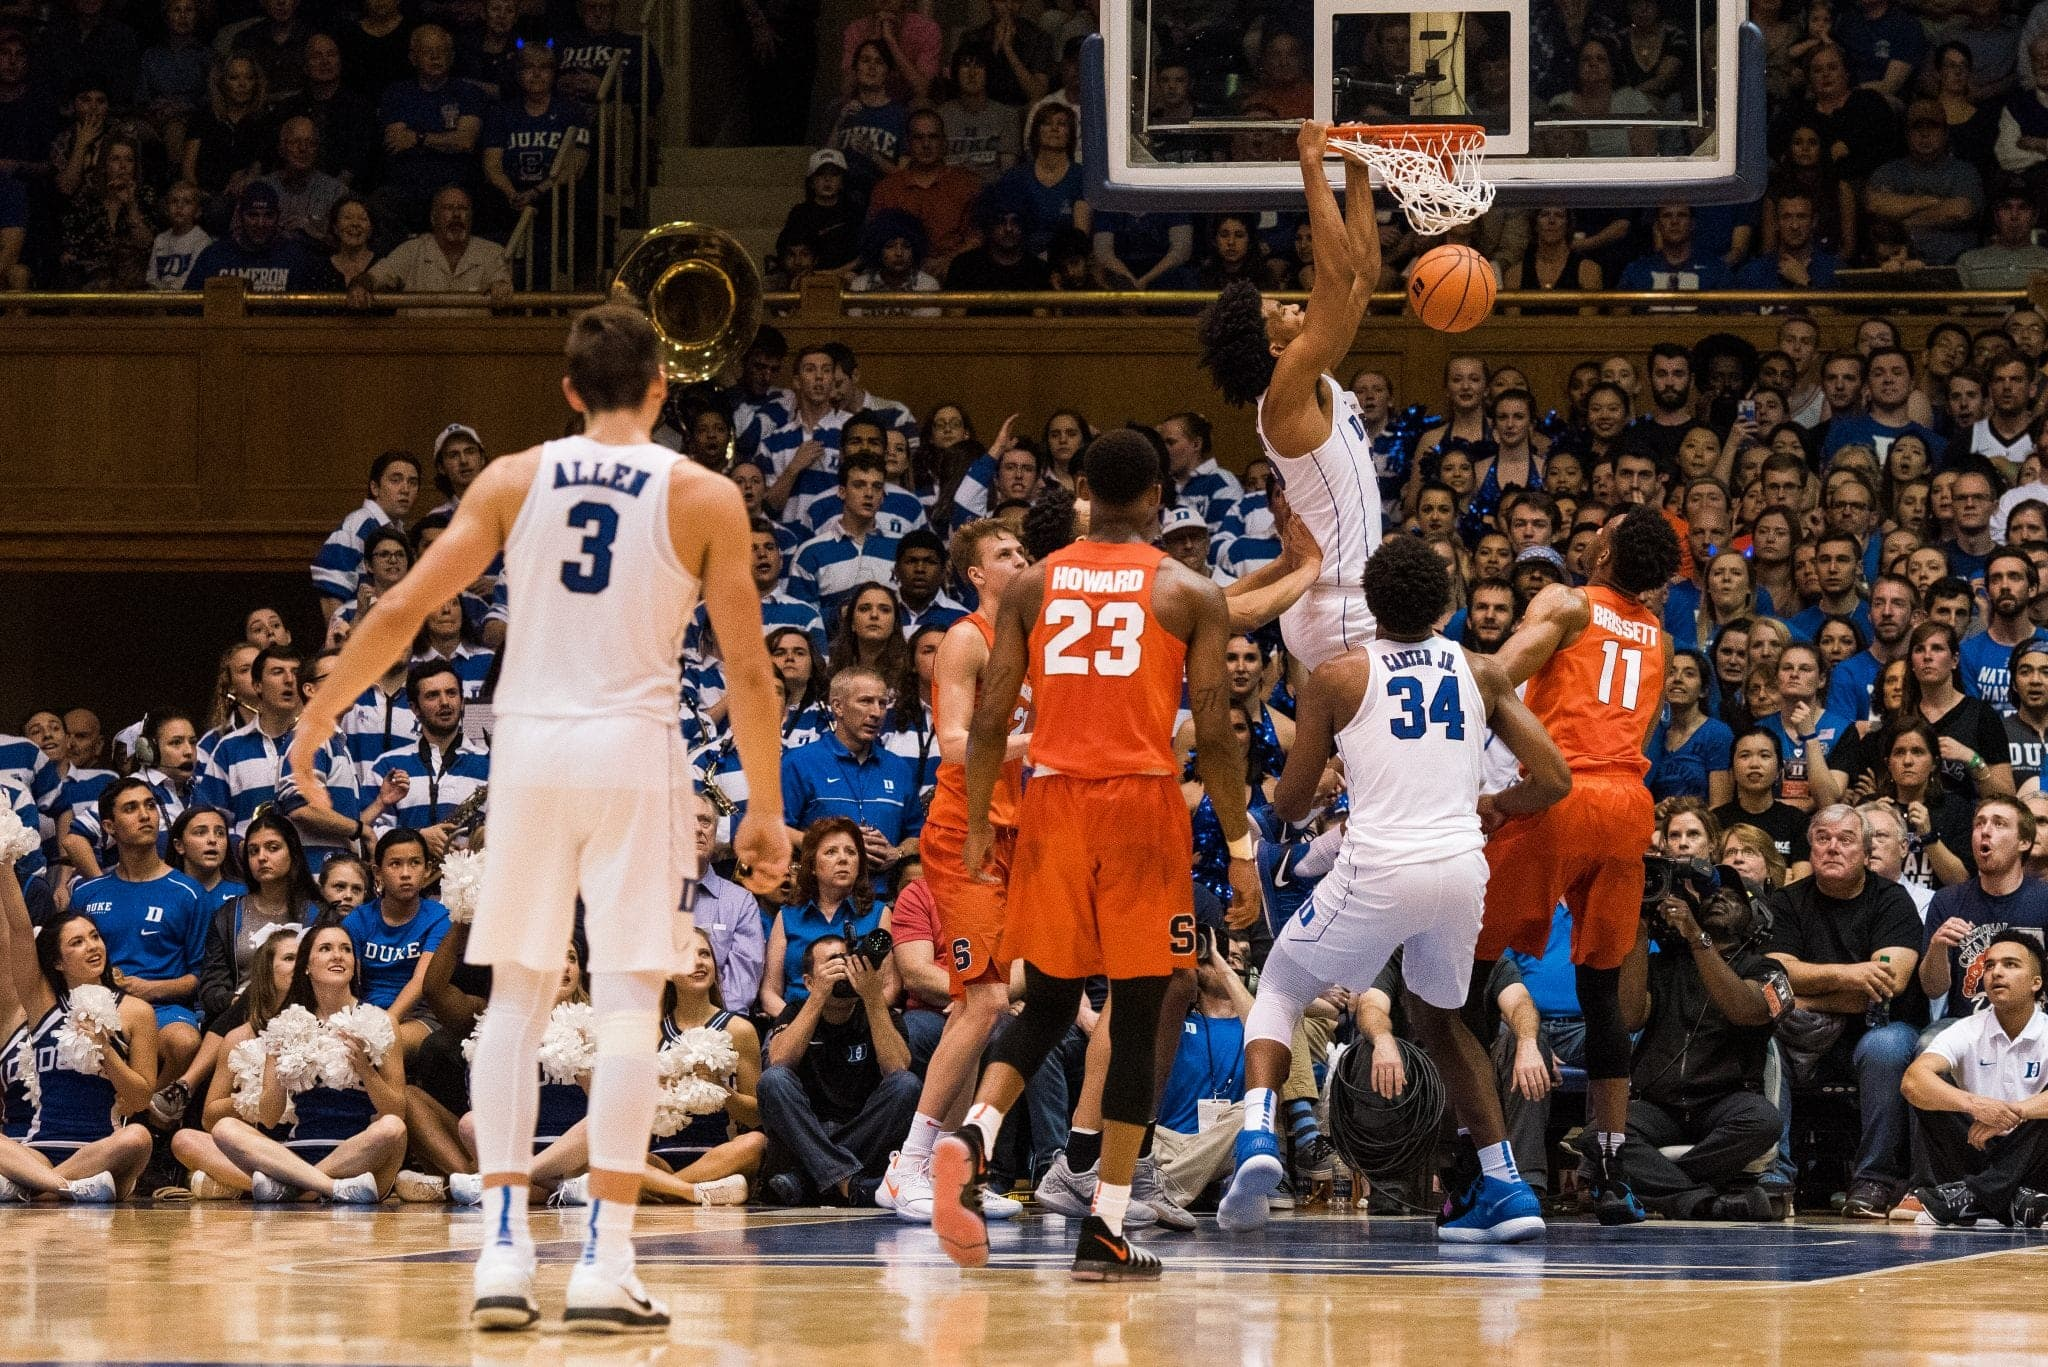 Duke player hangs on the rim during game against SU.